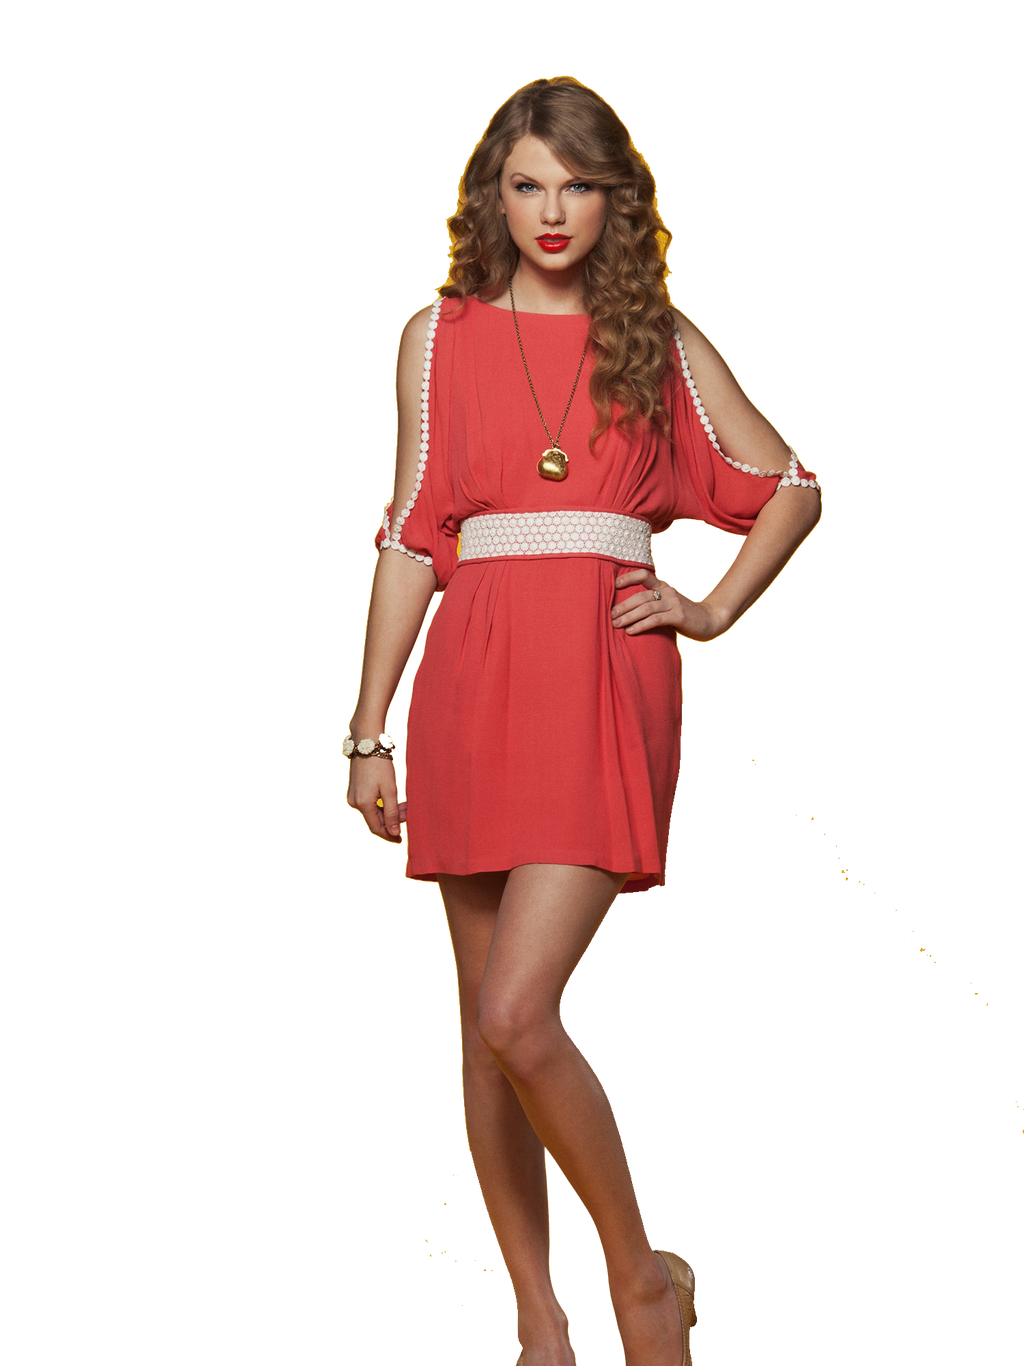 Image Result For Taylor Swift